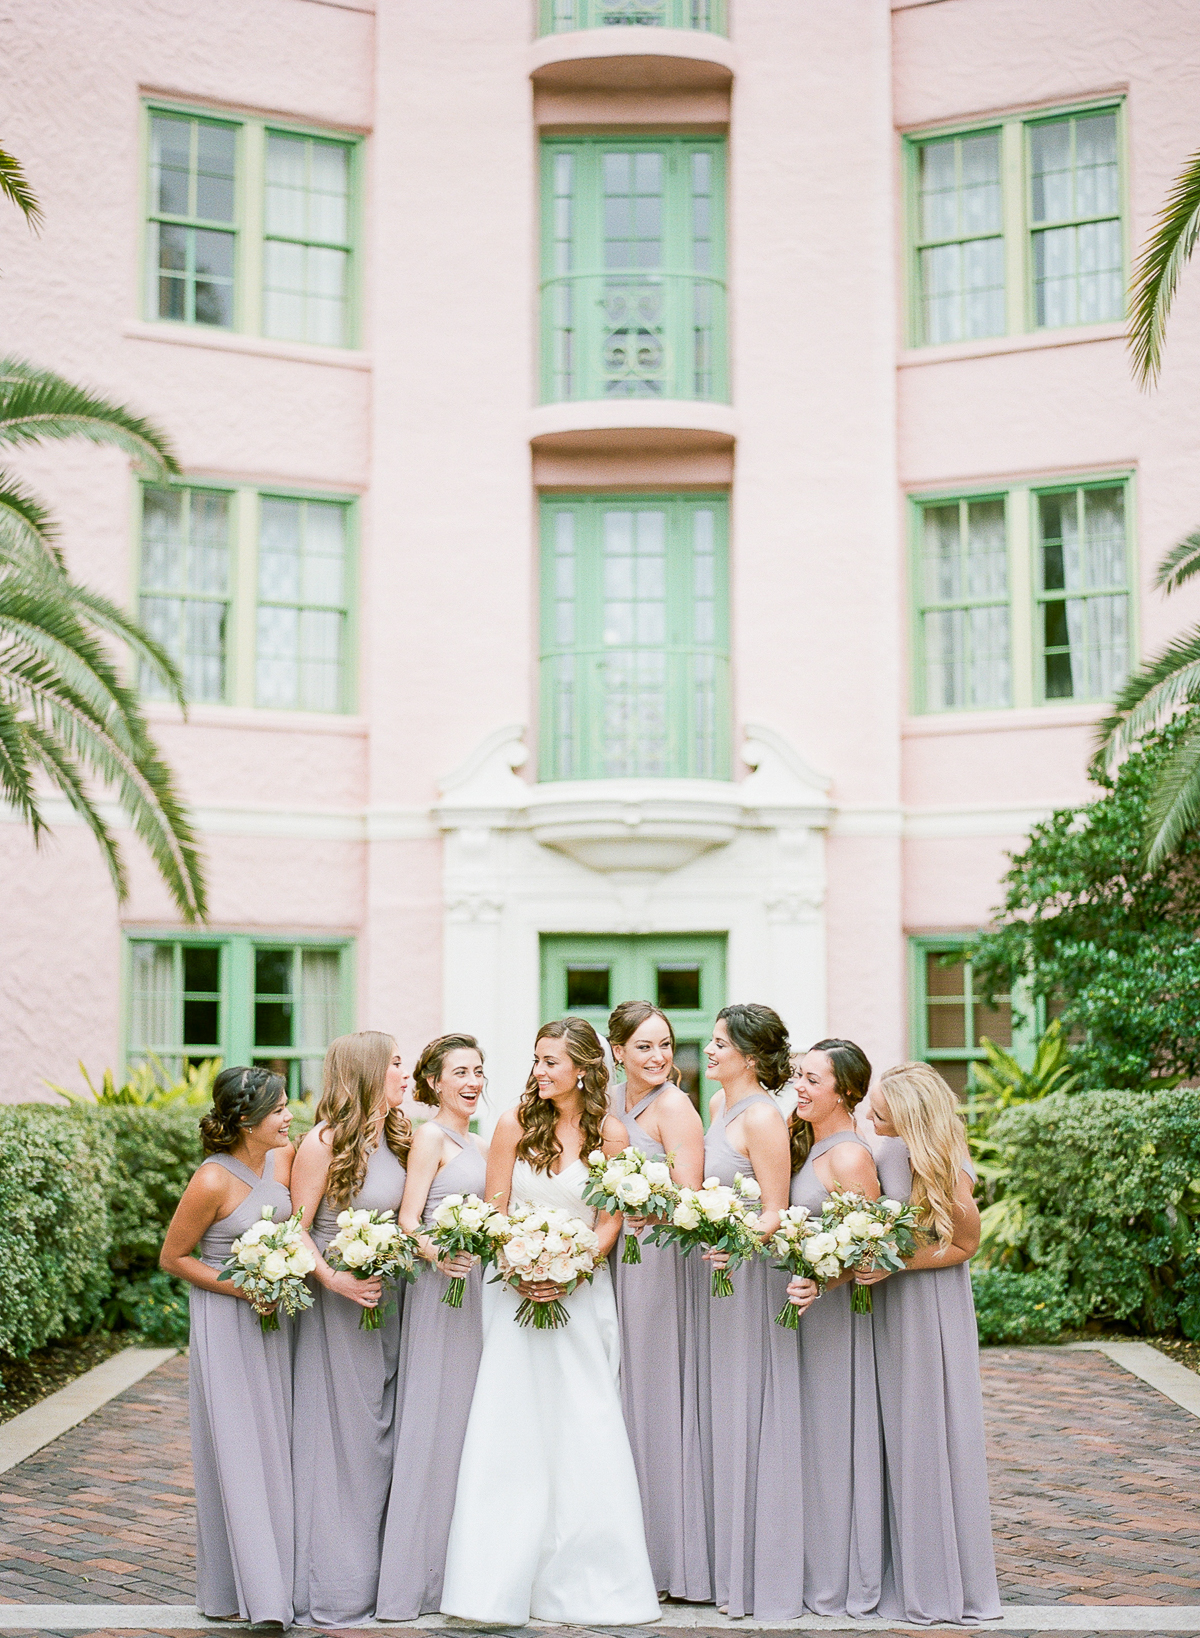 Pale Lavender Bridesmaids Dresses